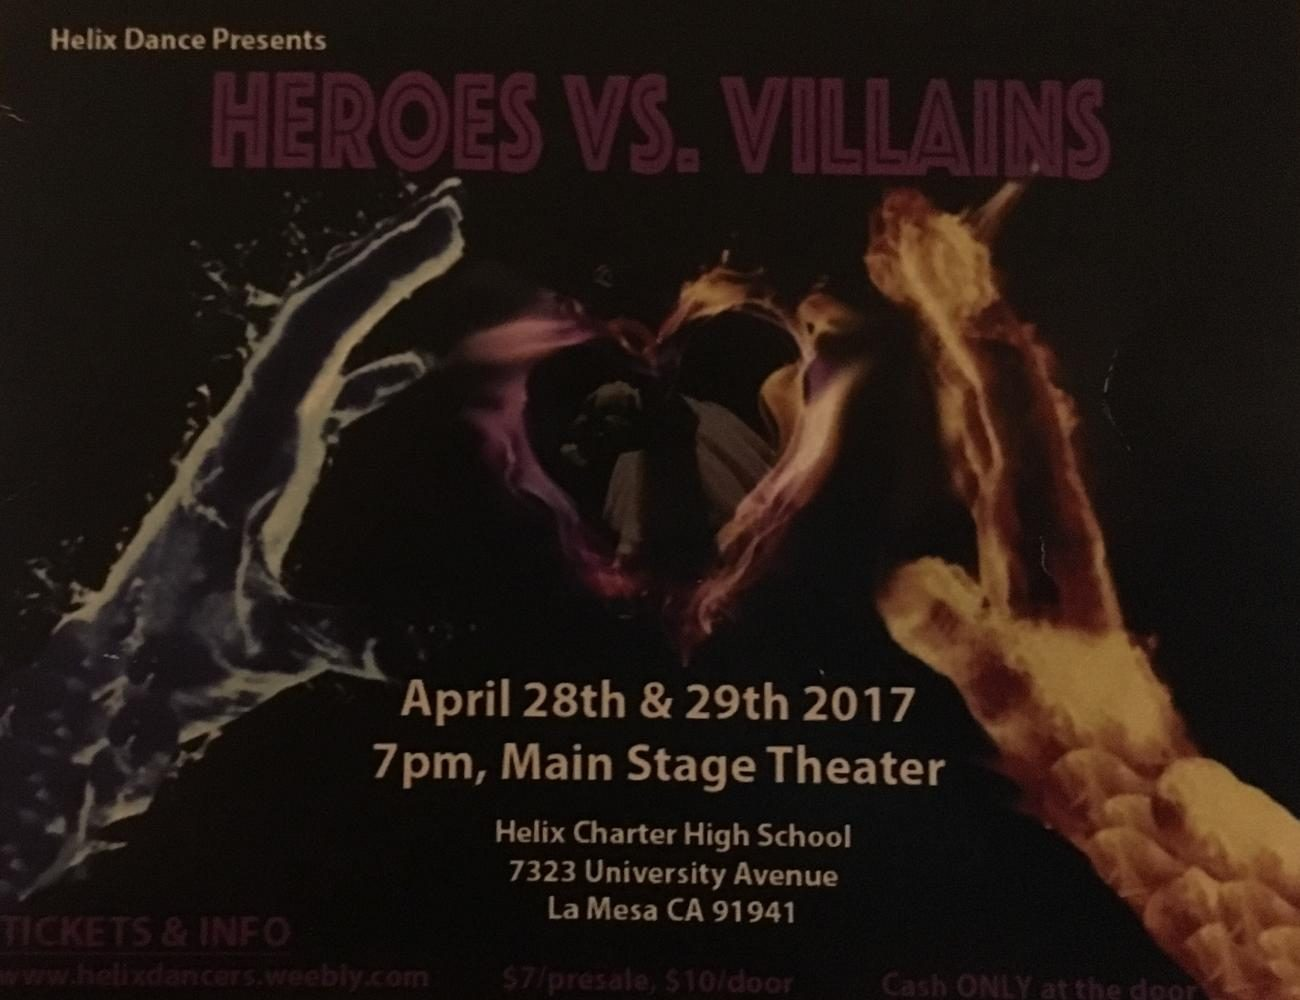 Heroes vs. Villains Dance Show